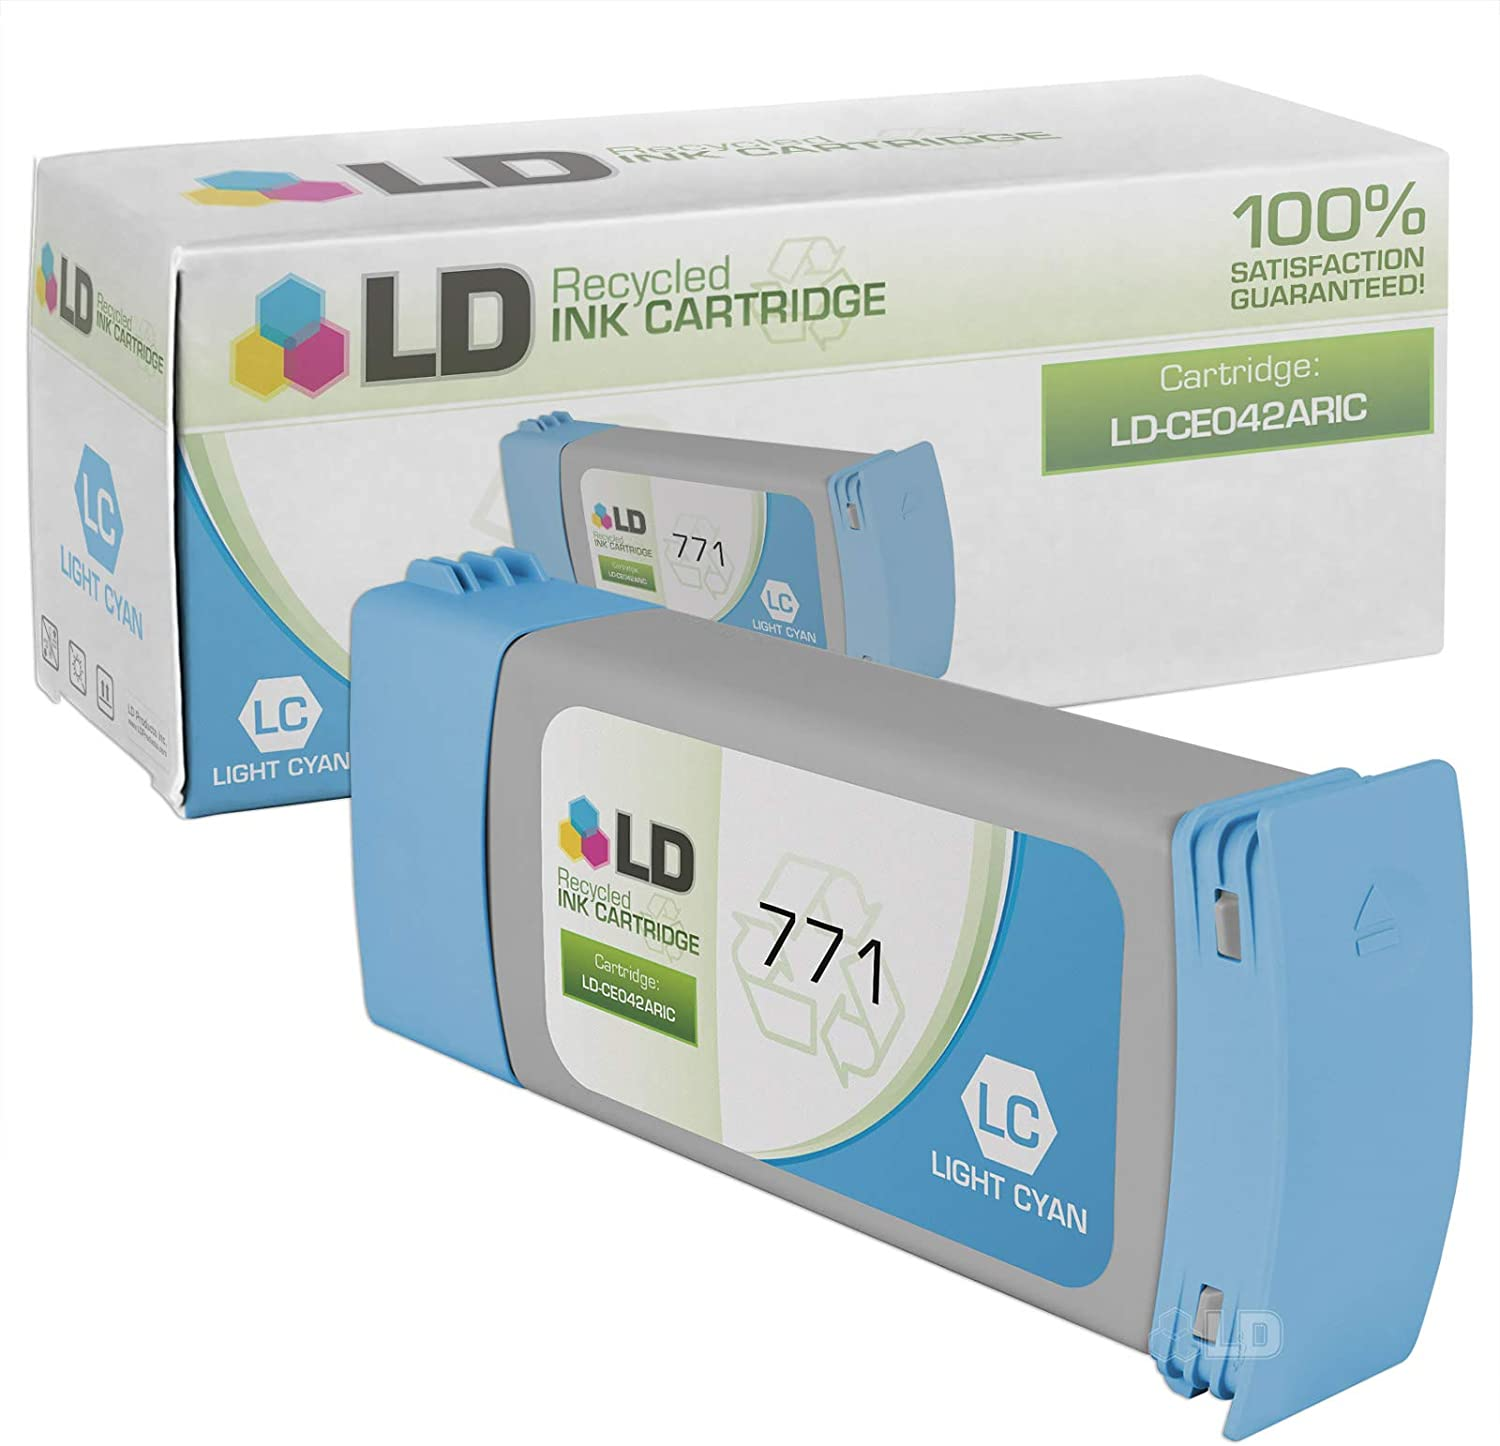 LD Remanufactured Ink Cartridge Replacement for HP 771 CE042A (Light Cyan)